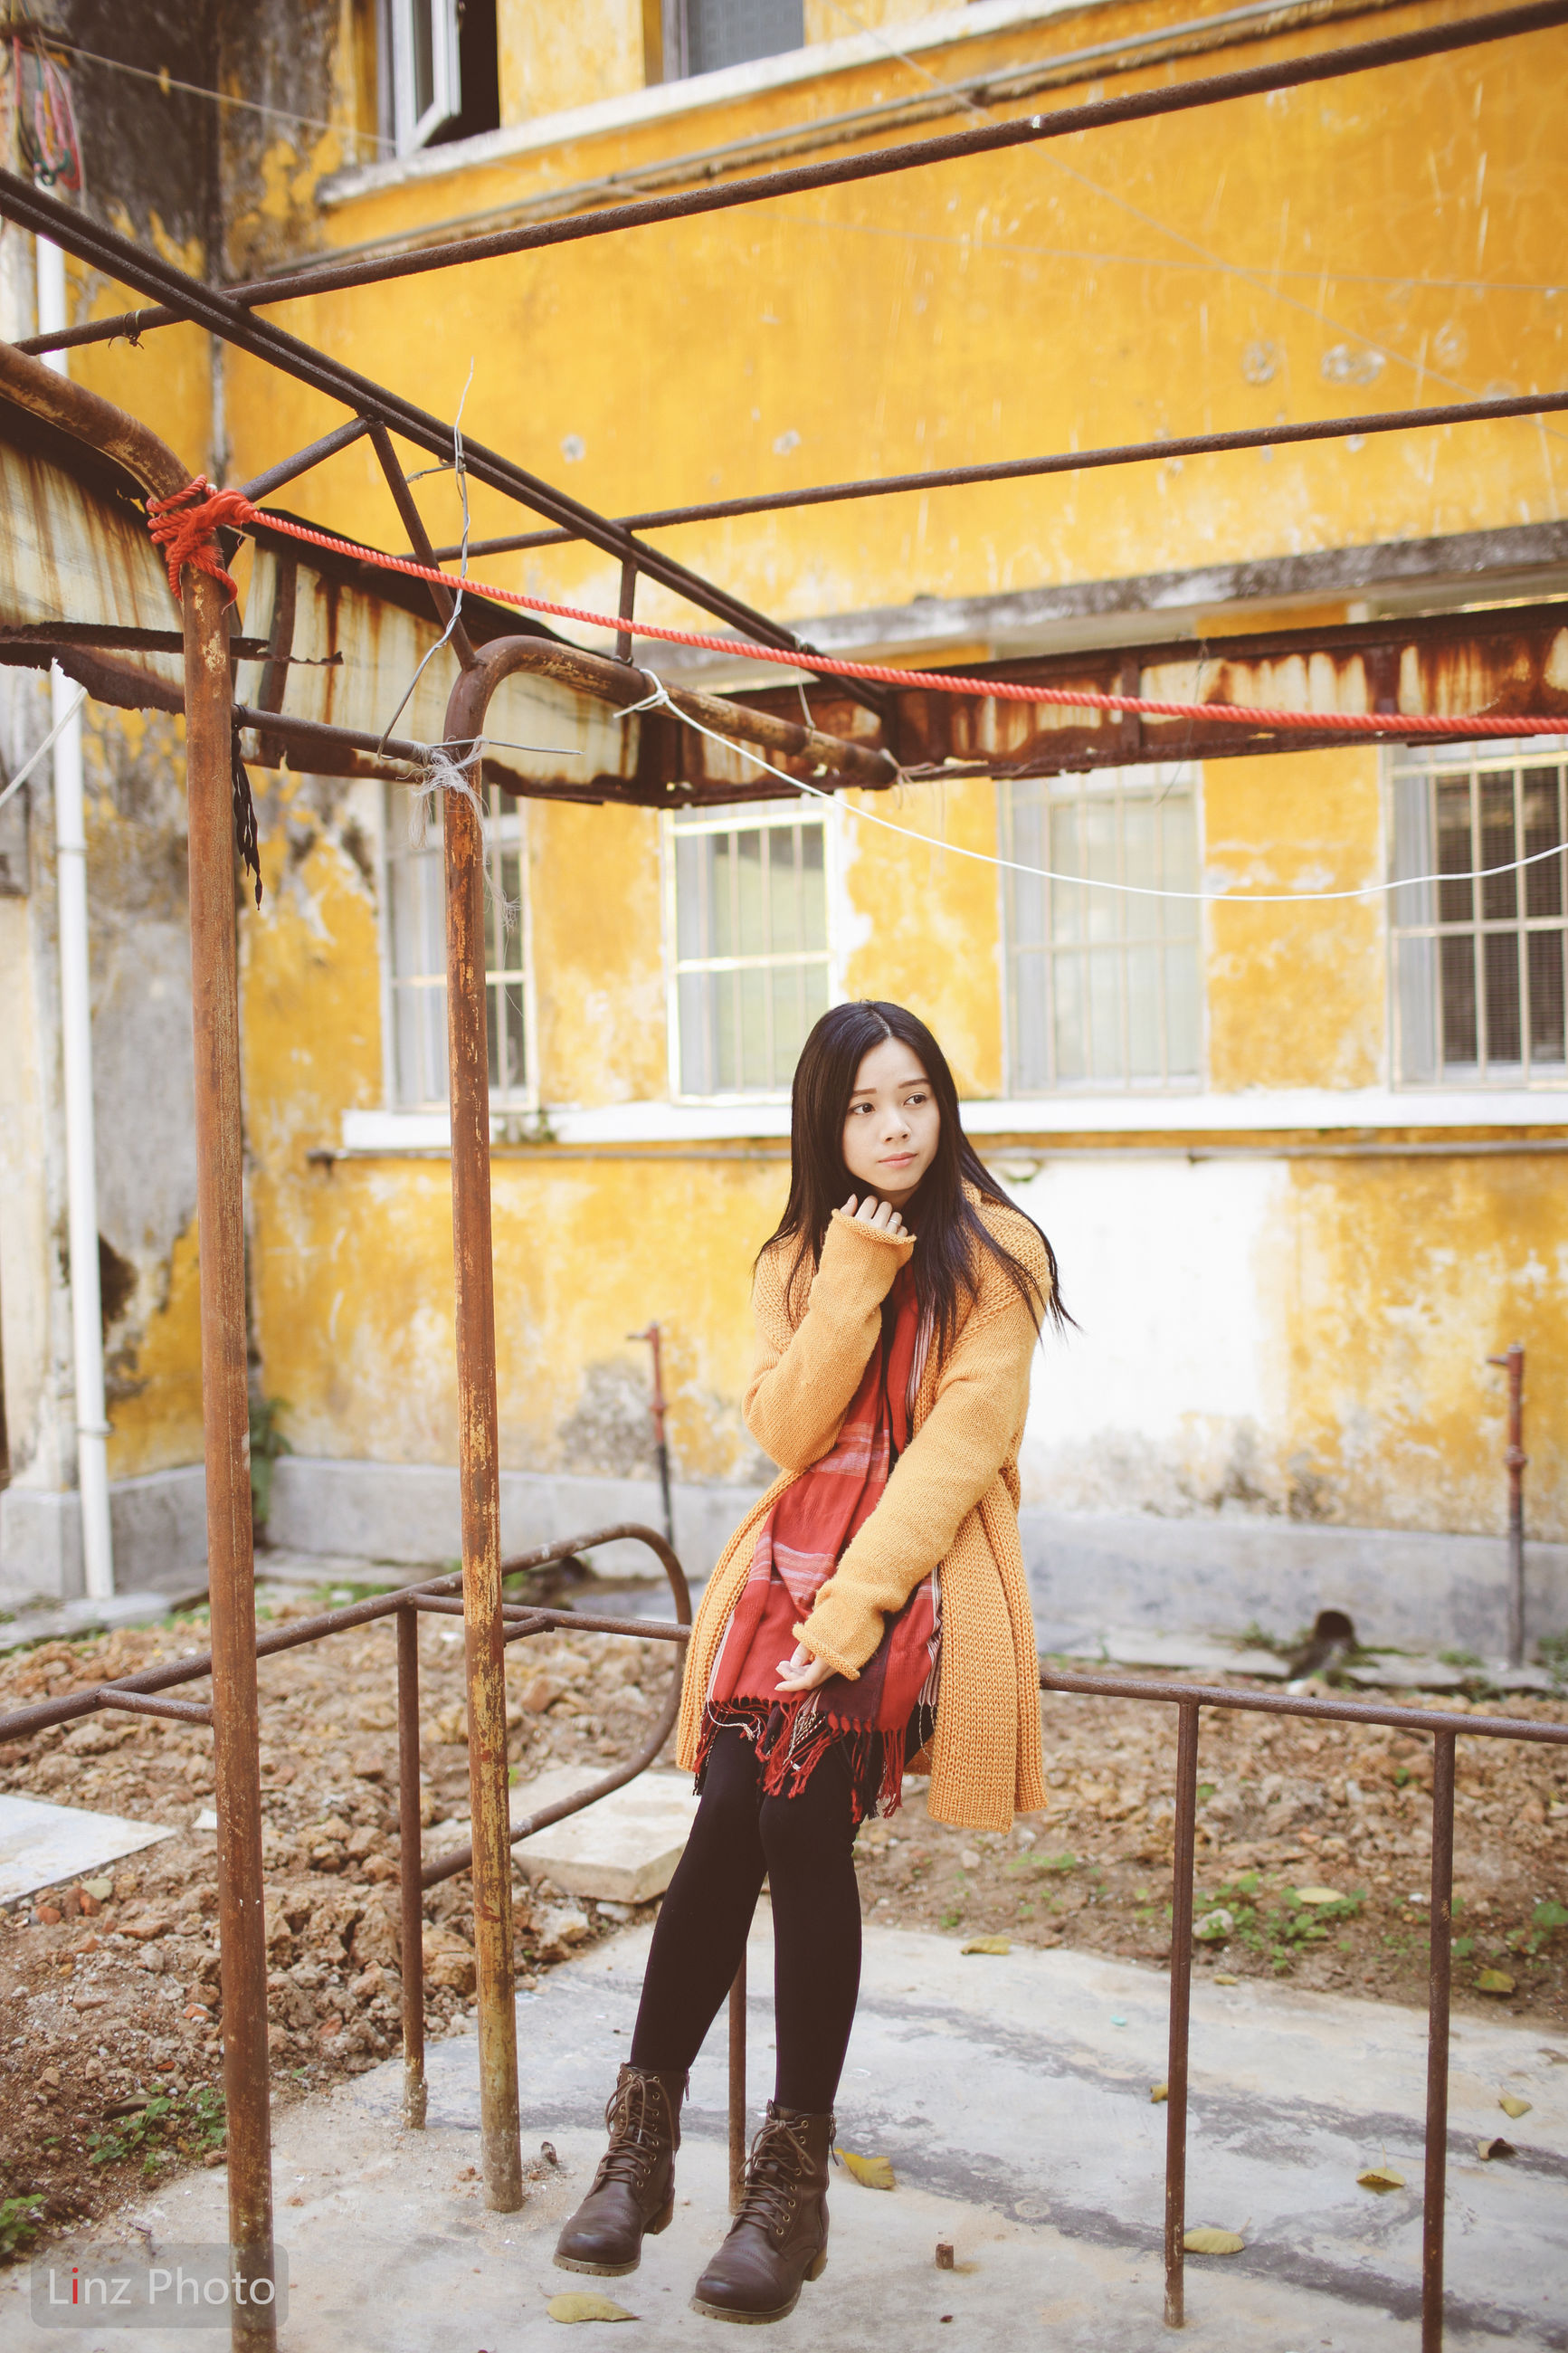 lifestyles, building exterior, full length, young adult, leisure activity, casual clothing, architecture, built structure, person, standing, young women, warm clothing, long hair, three quarter length, front view, holding, graffiti, street